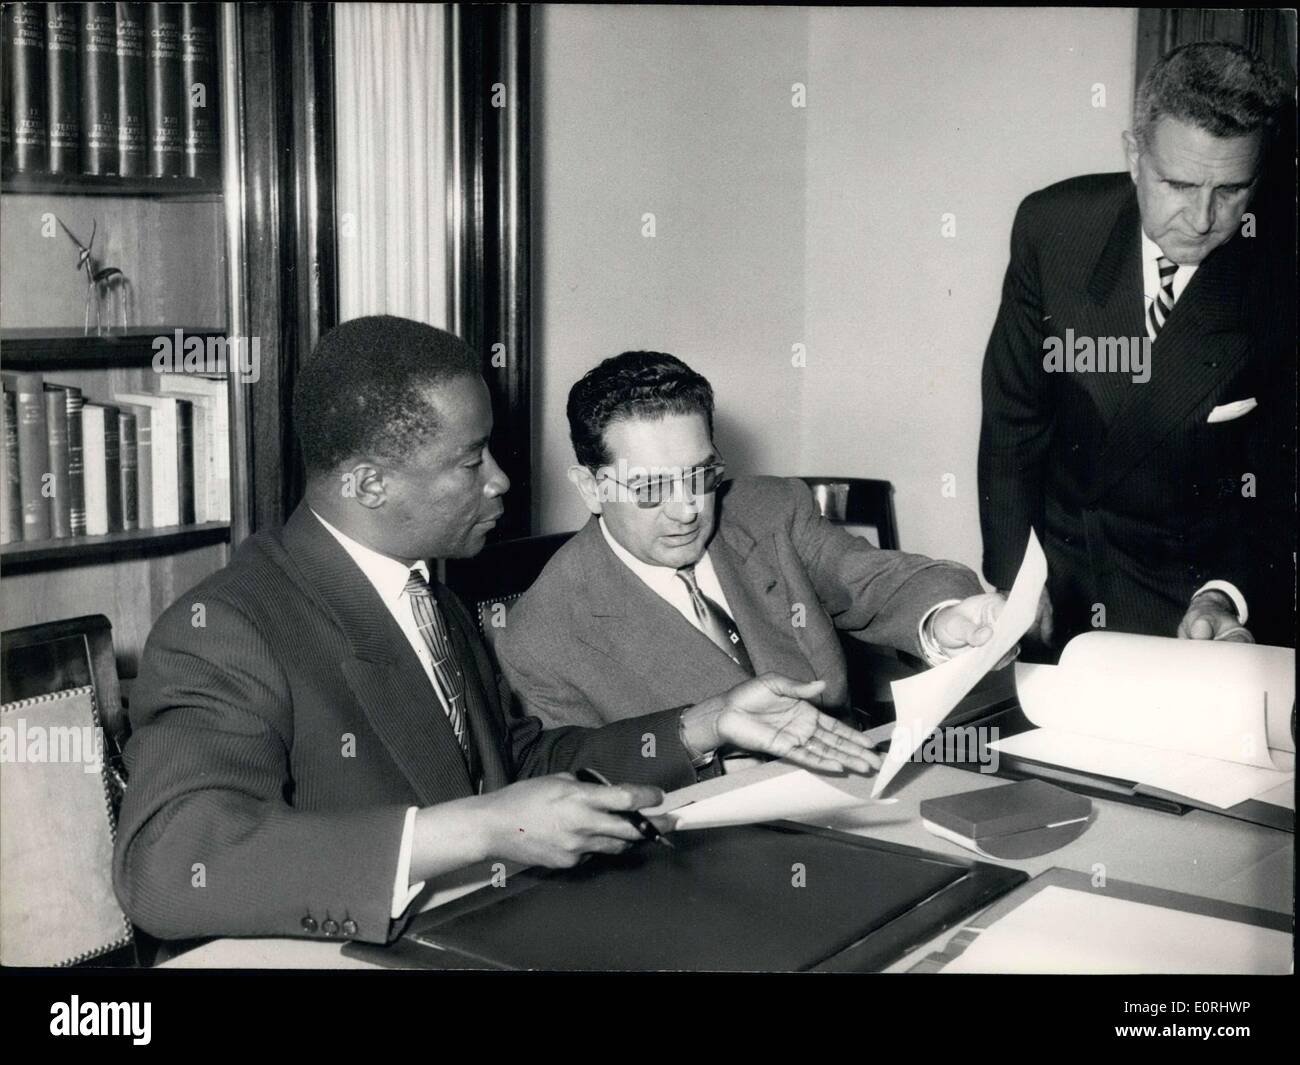 Sep. 14, 1959 - The Convention of Cooperation with Tchad was signed this morning at the new seat of the OCRS in Paris. Soustelle, a general delegate of the OCRS, and Lisette, the Vice-Prime Minister of Tchad, were in charge of the economic coordination, planning, and the external relations, and are pictured signing the agreements. Faure, a representative of the French Prime Minister, is standing behind them. - Stock Image